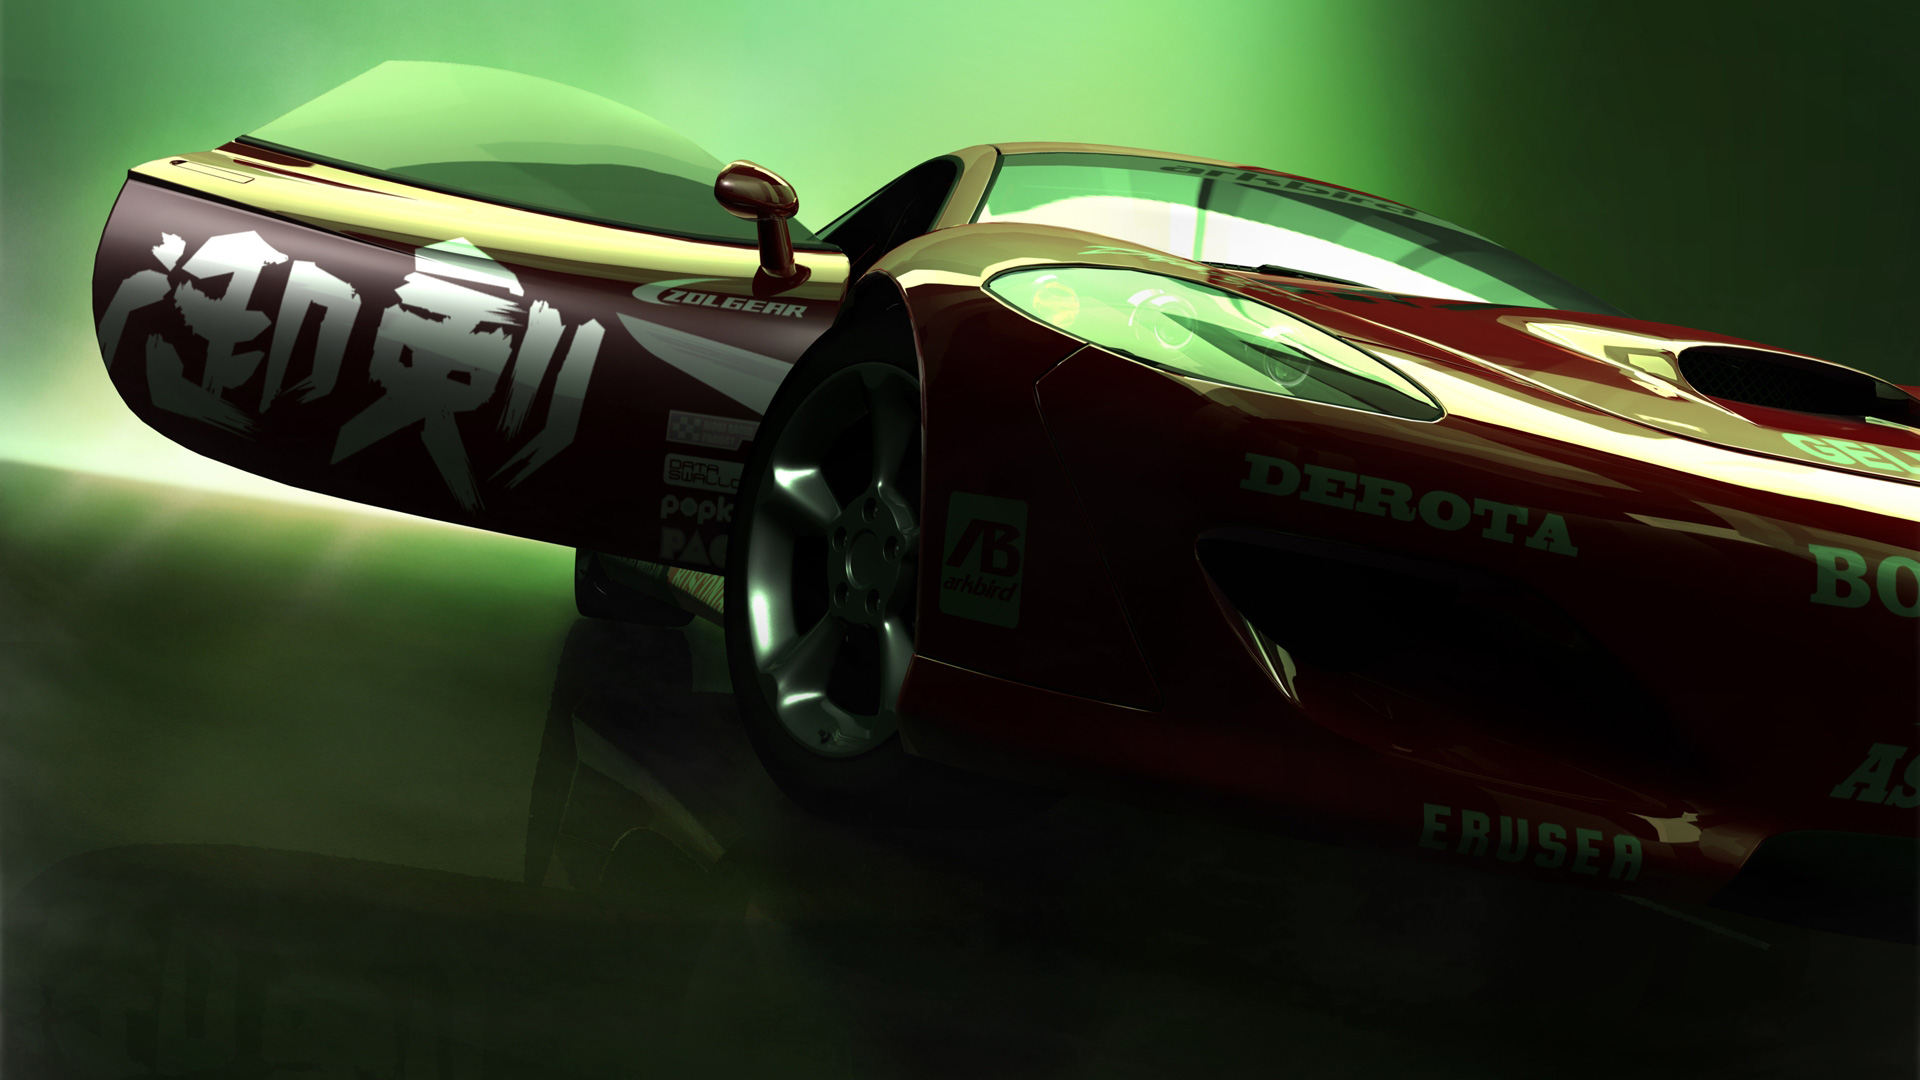 Ridge Racer 1080p HD Car 393.84 Kb